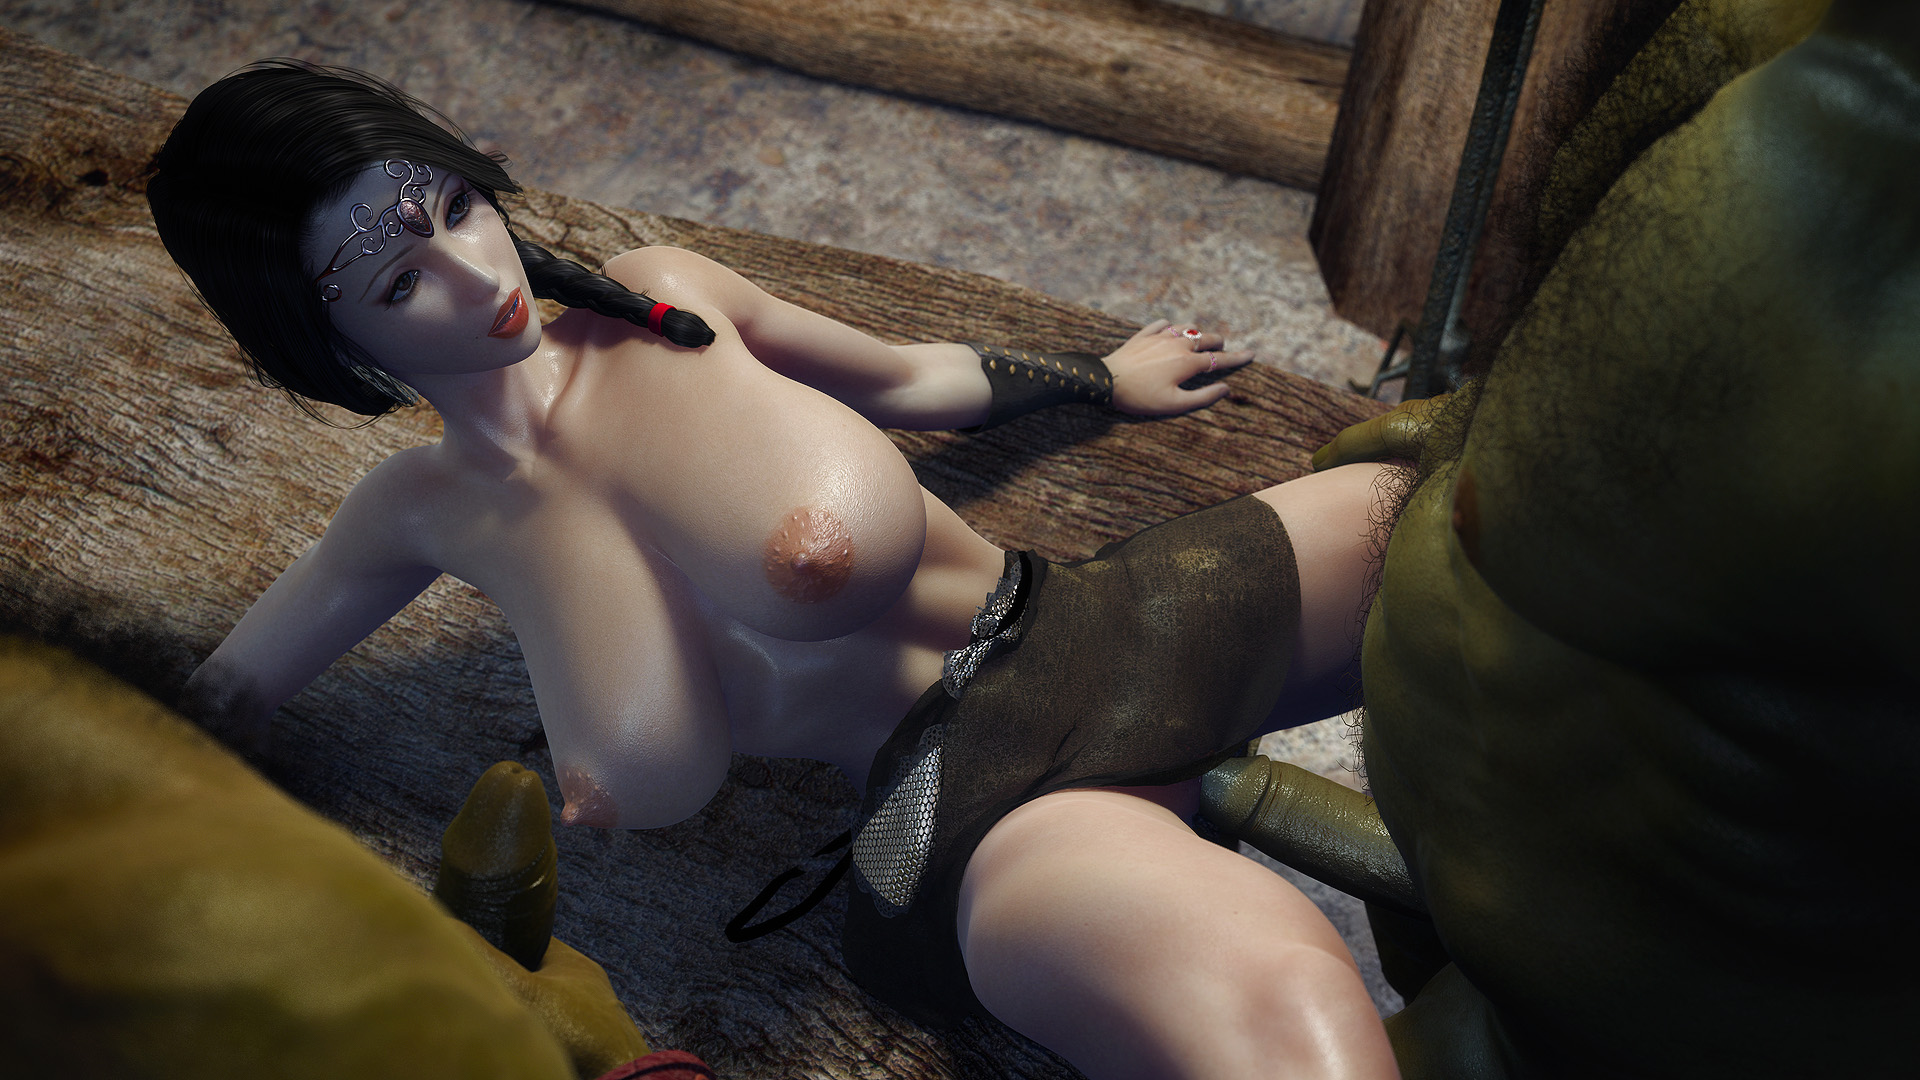 Orcs sex animation adult image